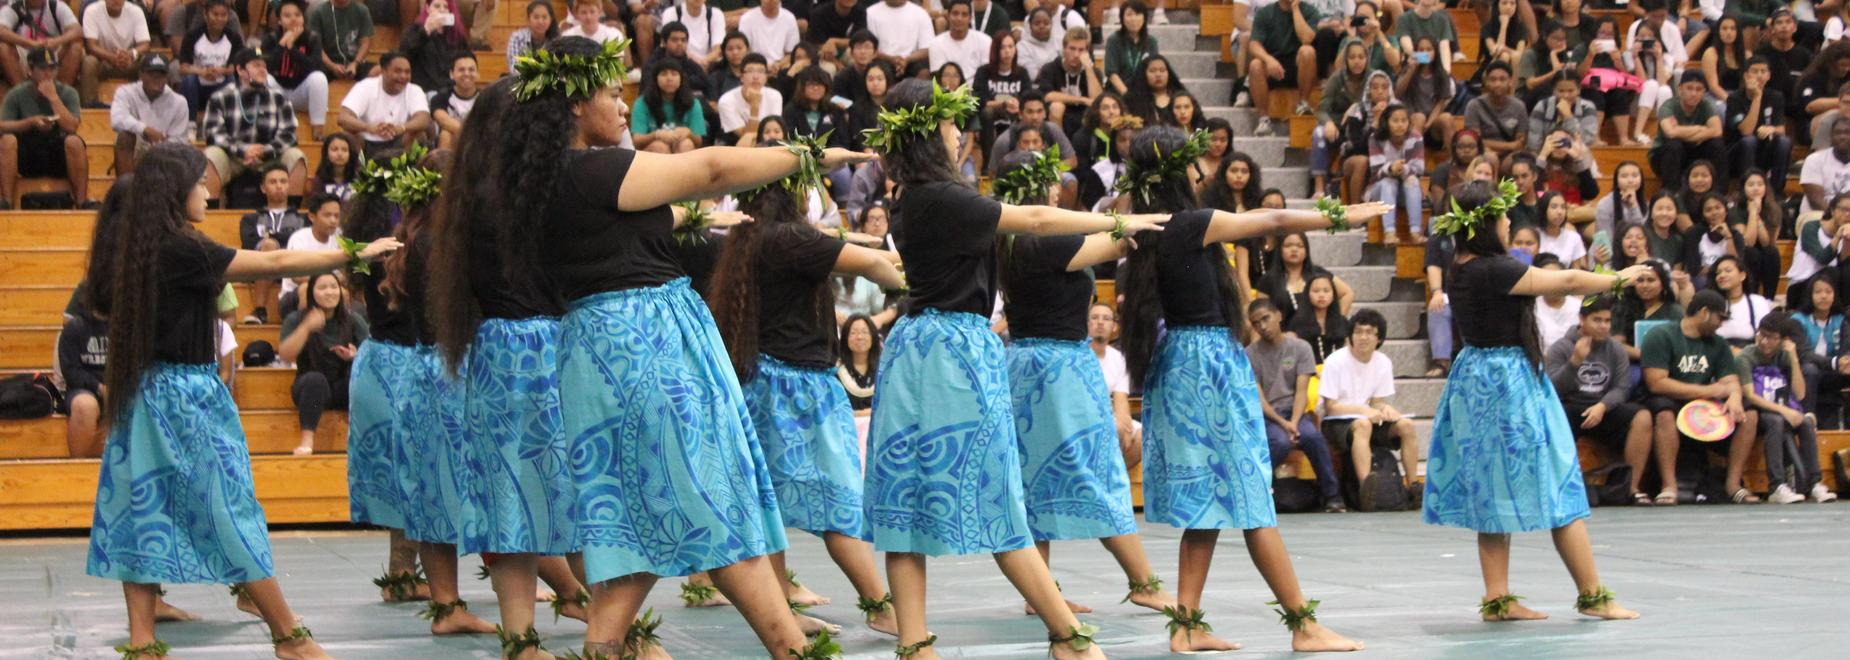 Aiea High Polynesian Club